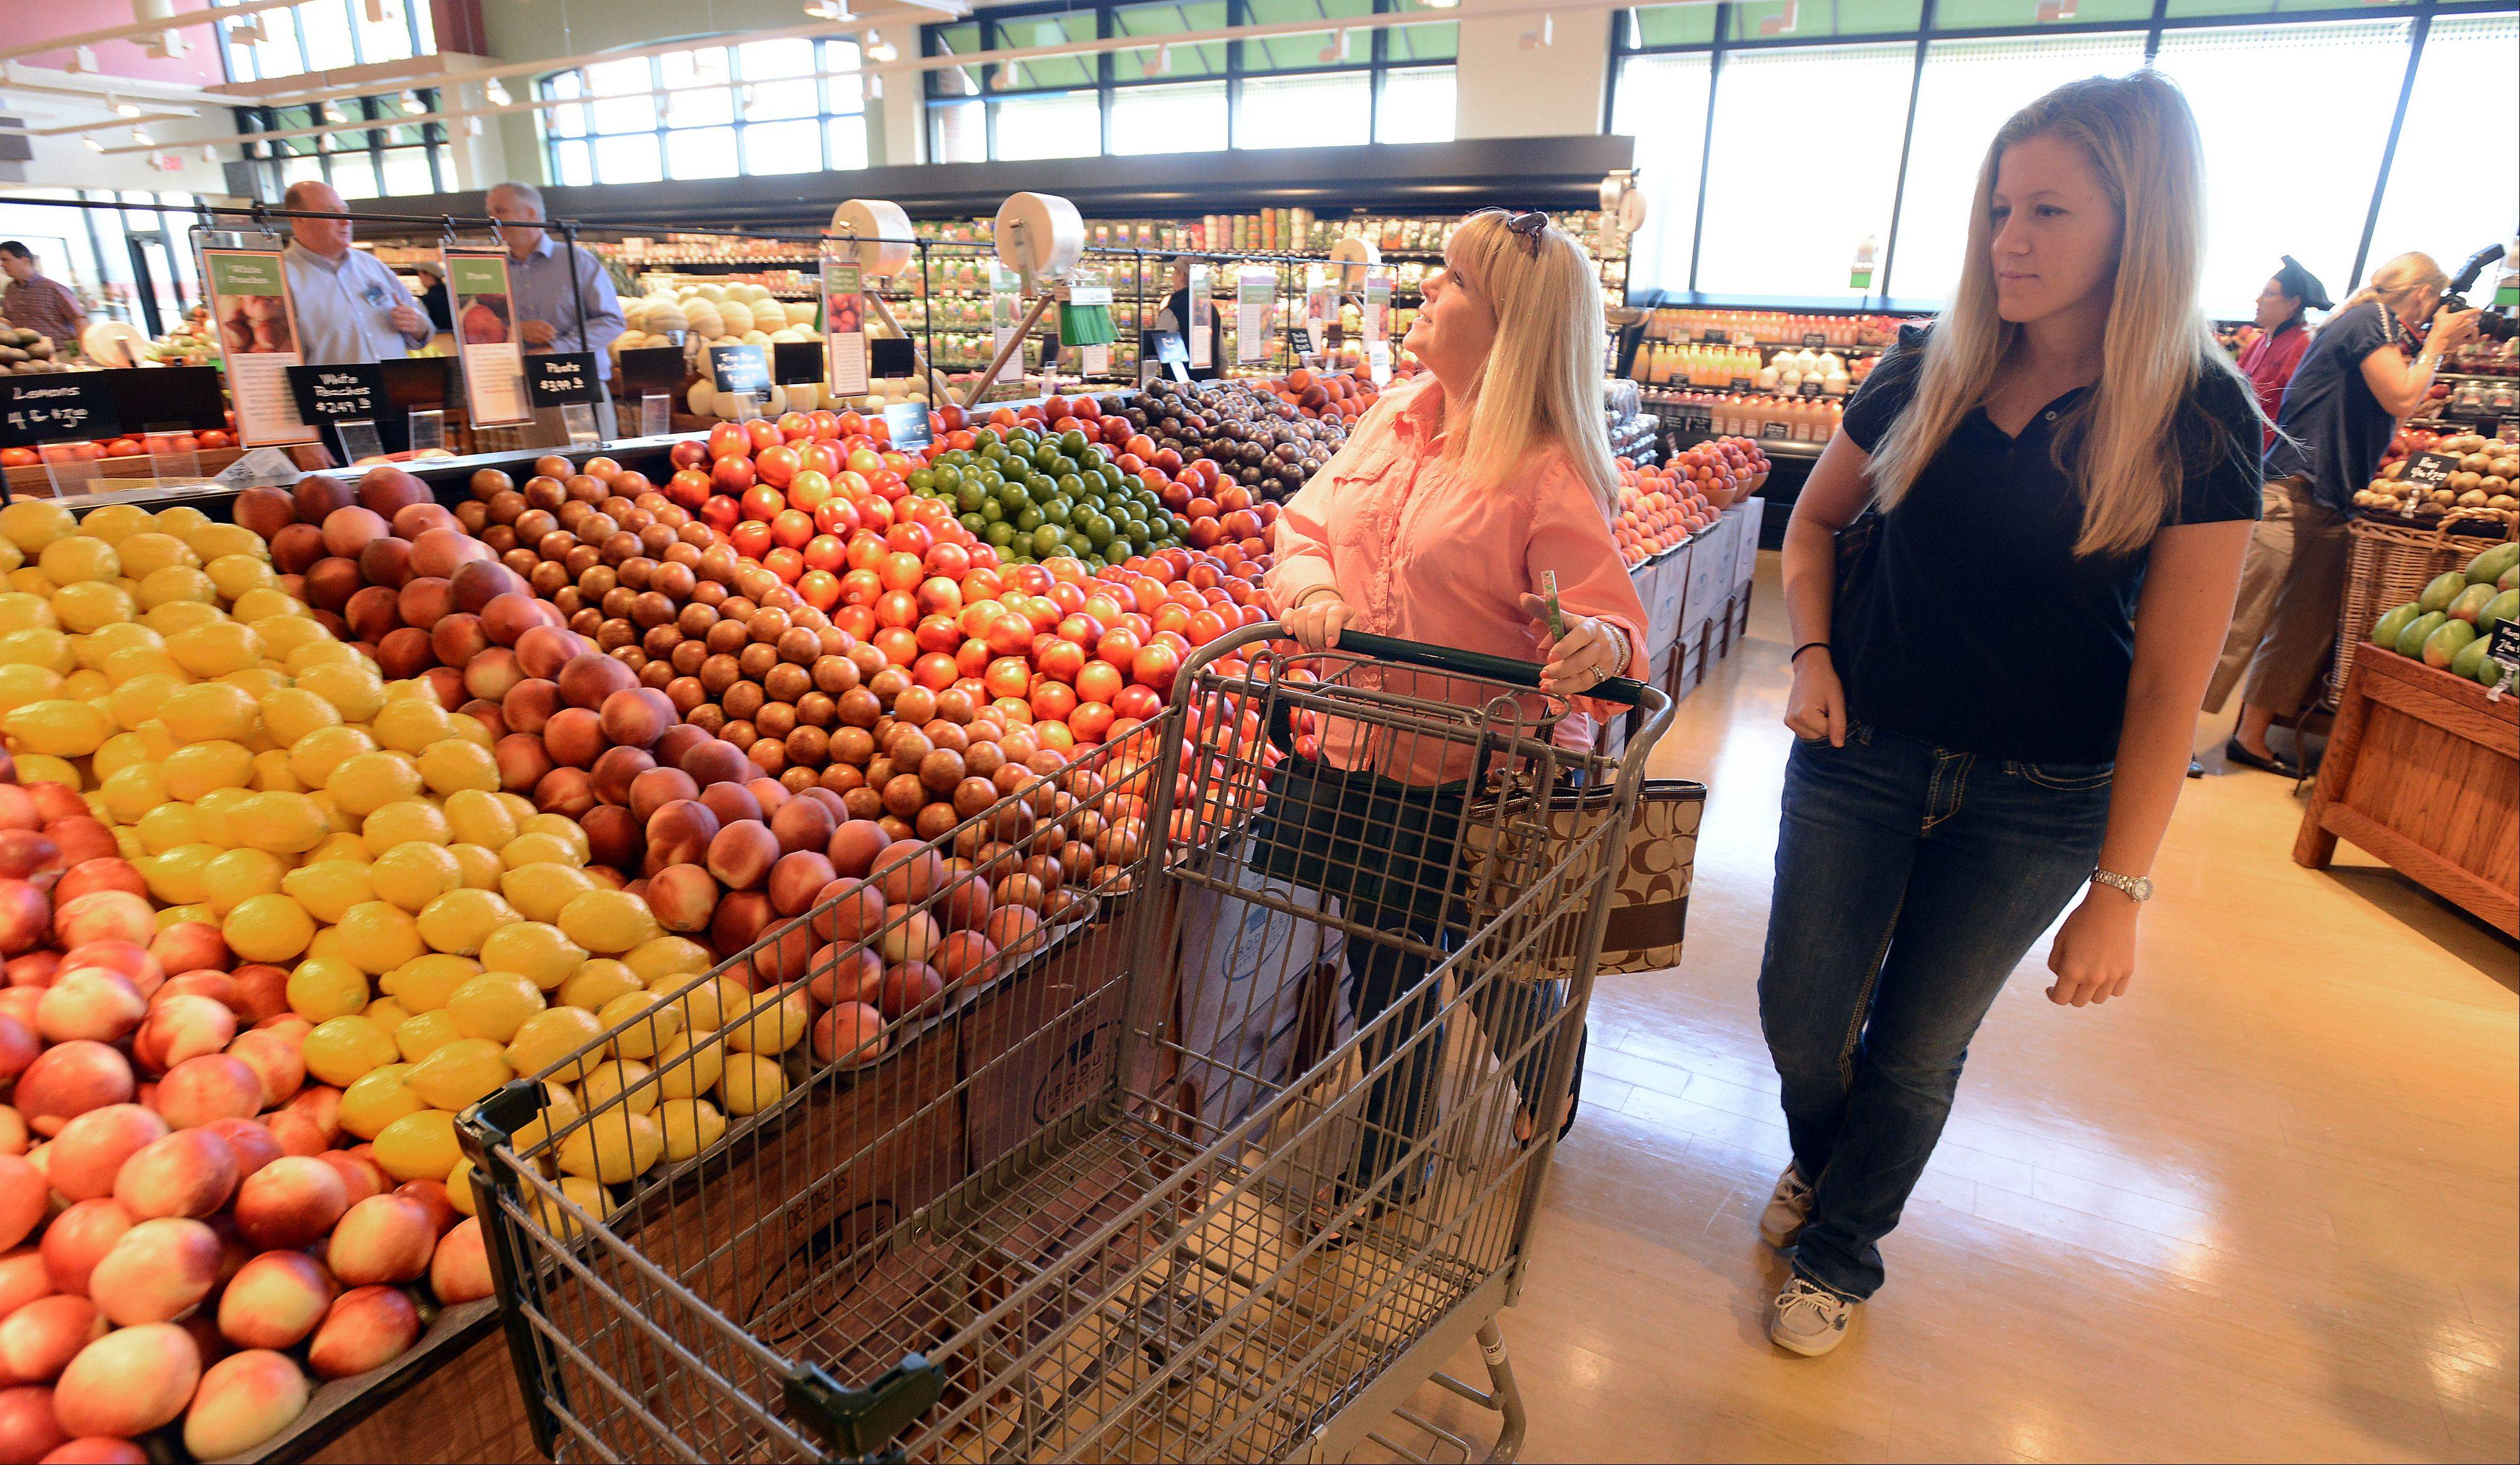 Nancy and Missy Apmann check out the new Heinen's Fine Foods store in Barrington, where they were the first shoppers Wednesday morning. The store is the Cleveland-based chain's first in the Chicago area.